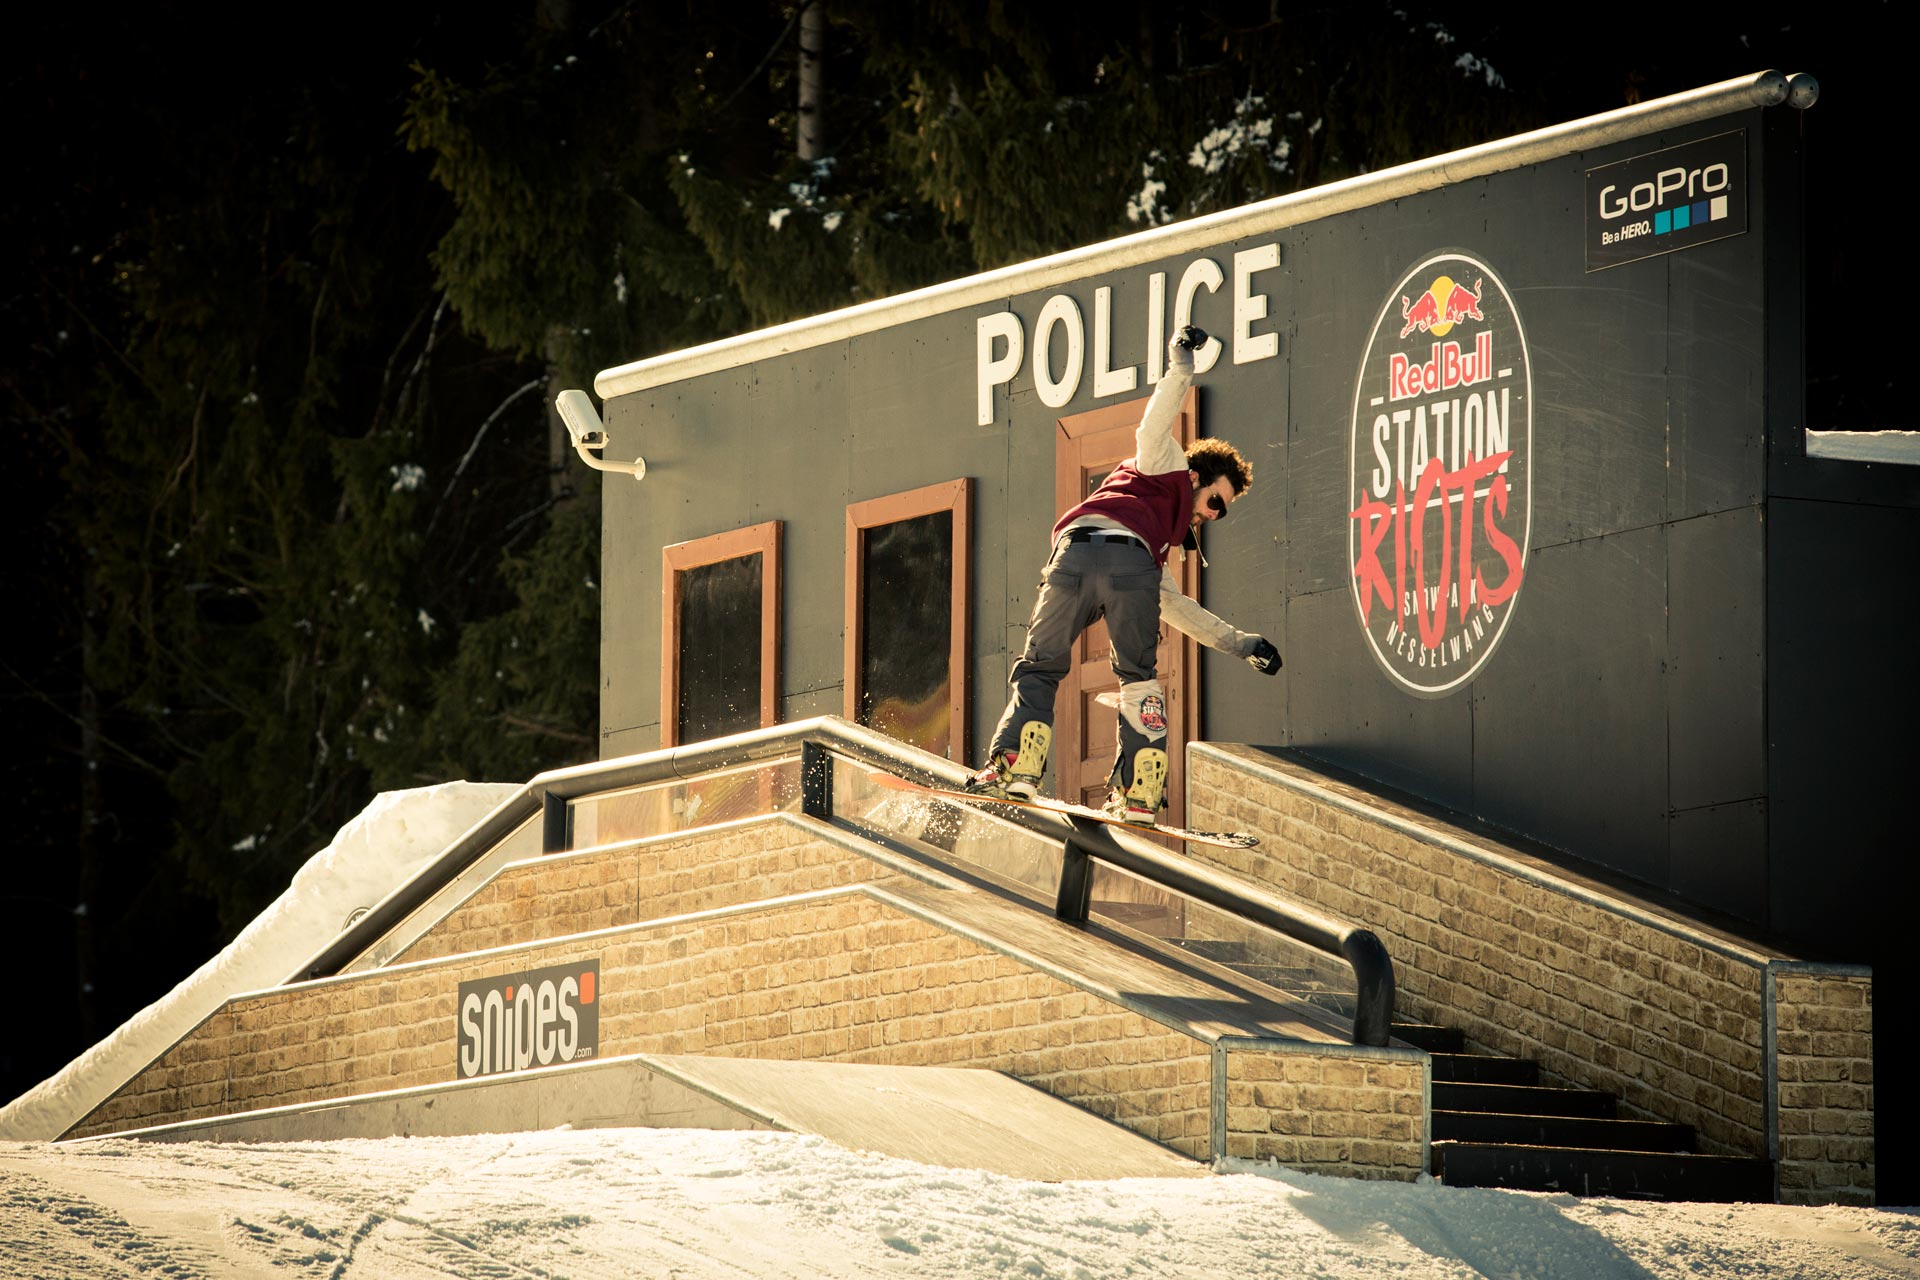 Michi Mayer riskiert ein Rail vor der Polizeistation - Foto: Red Bull Content Pool